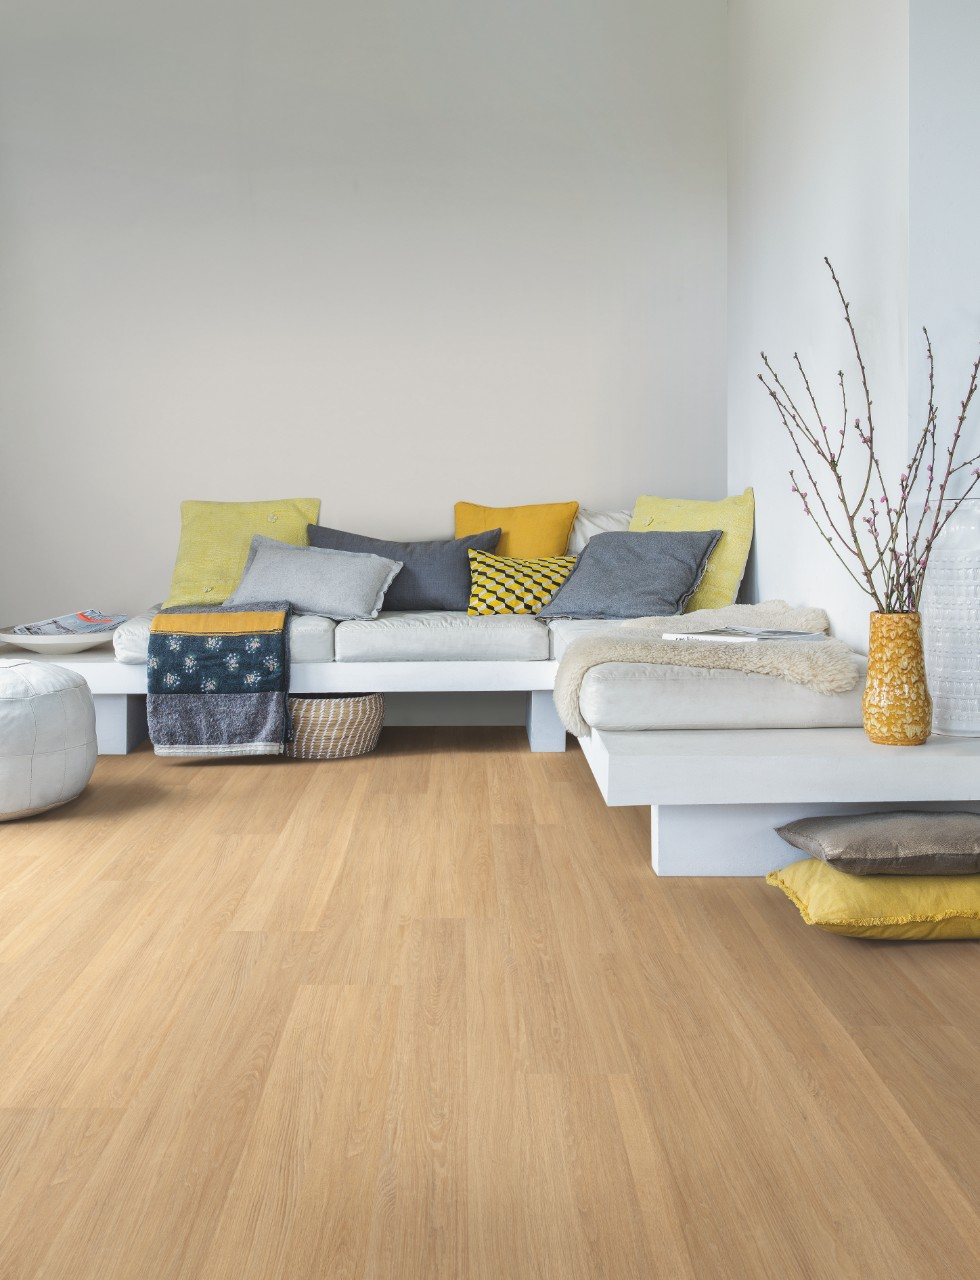 Natural Floorest Premiere Pisos Laminados Essencial oak FPR1577